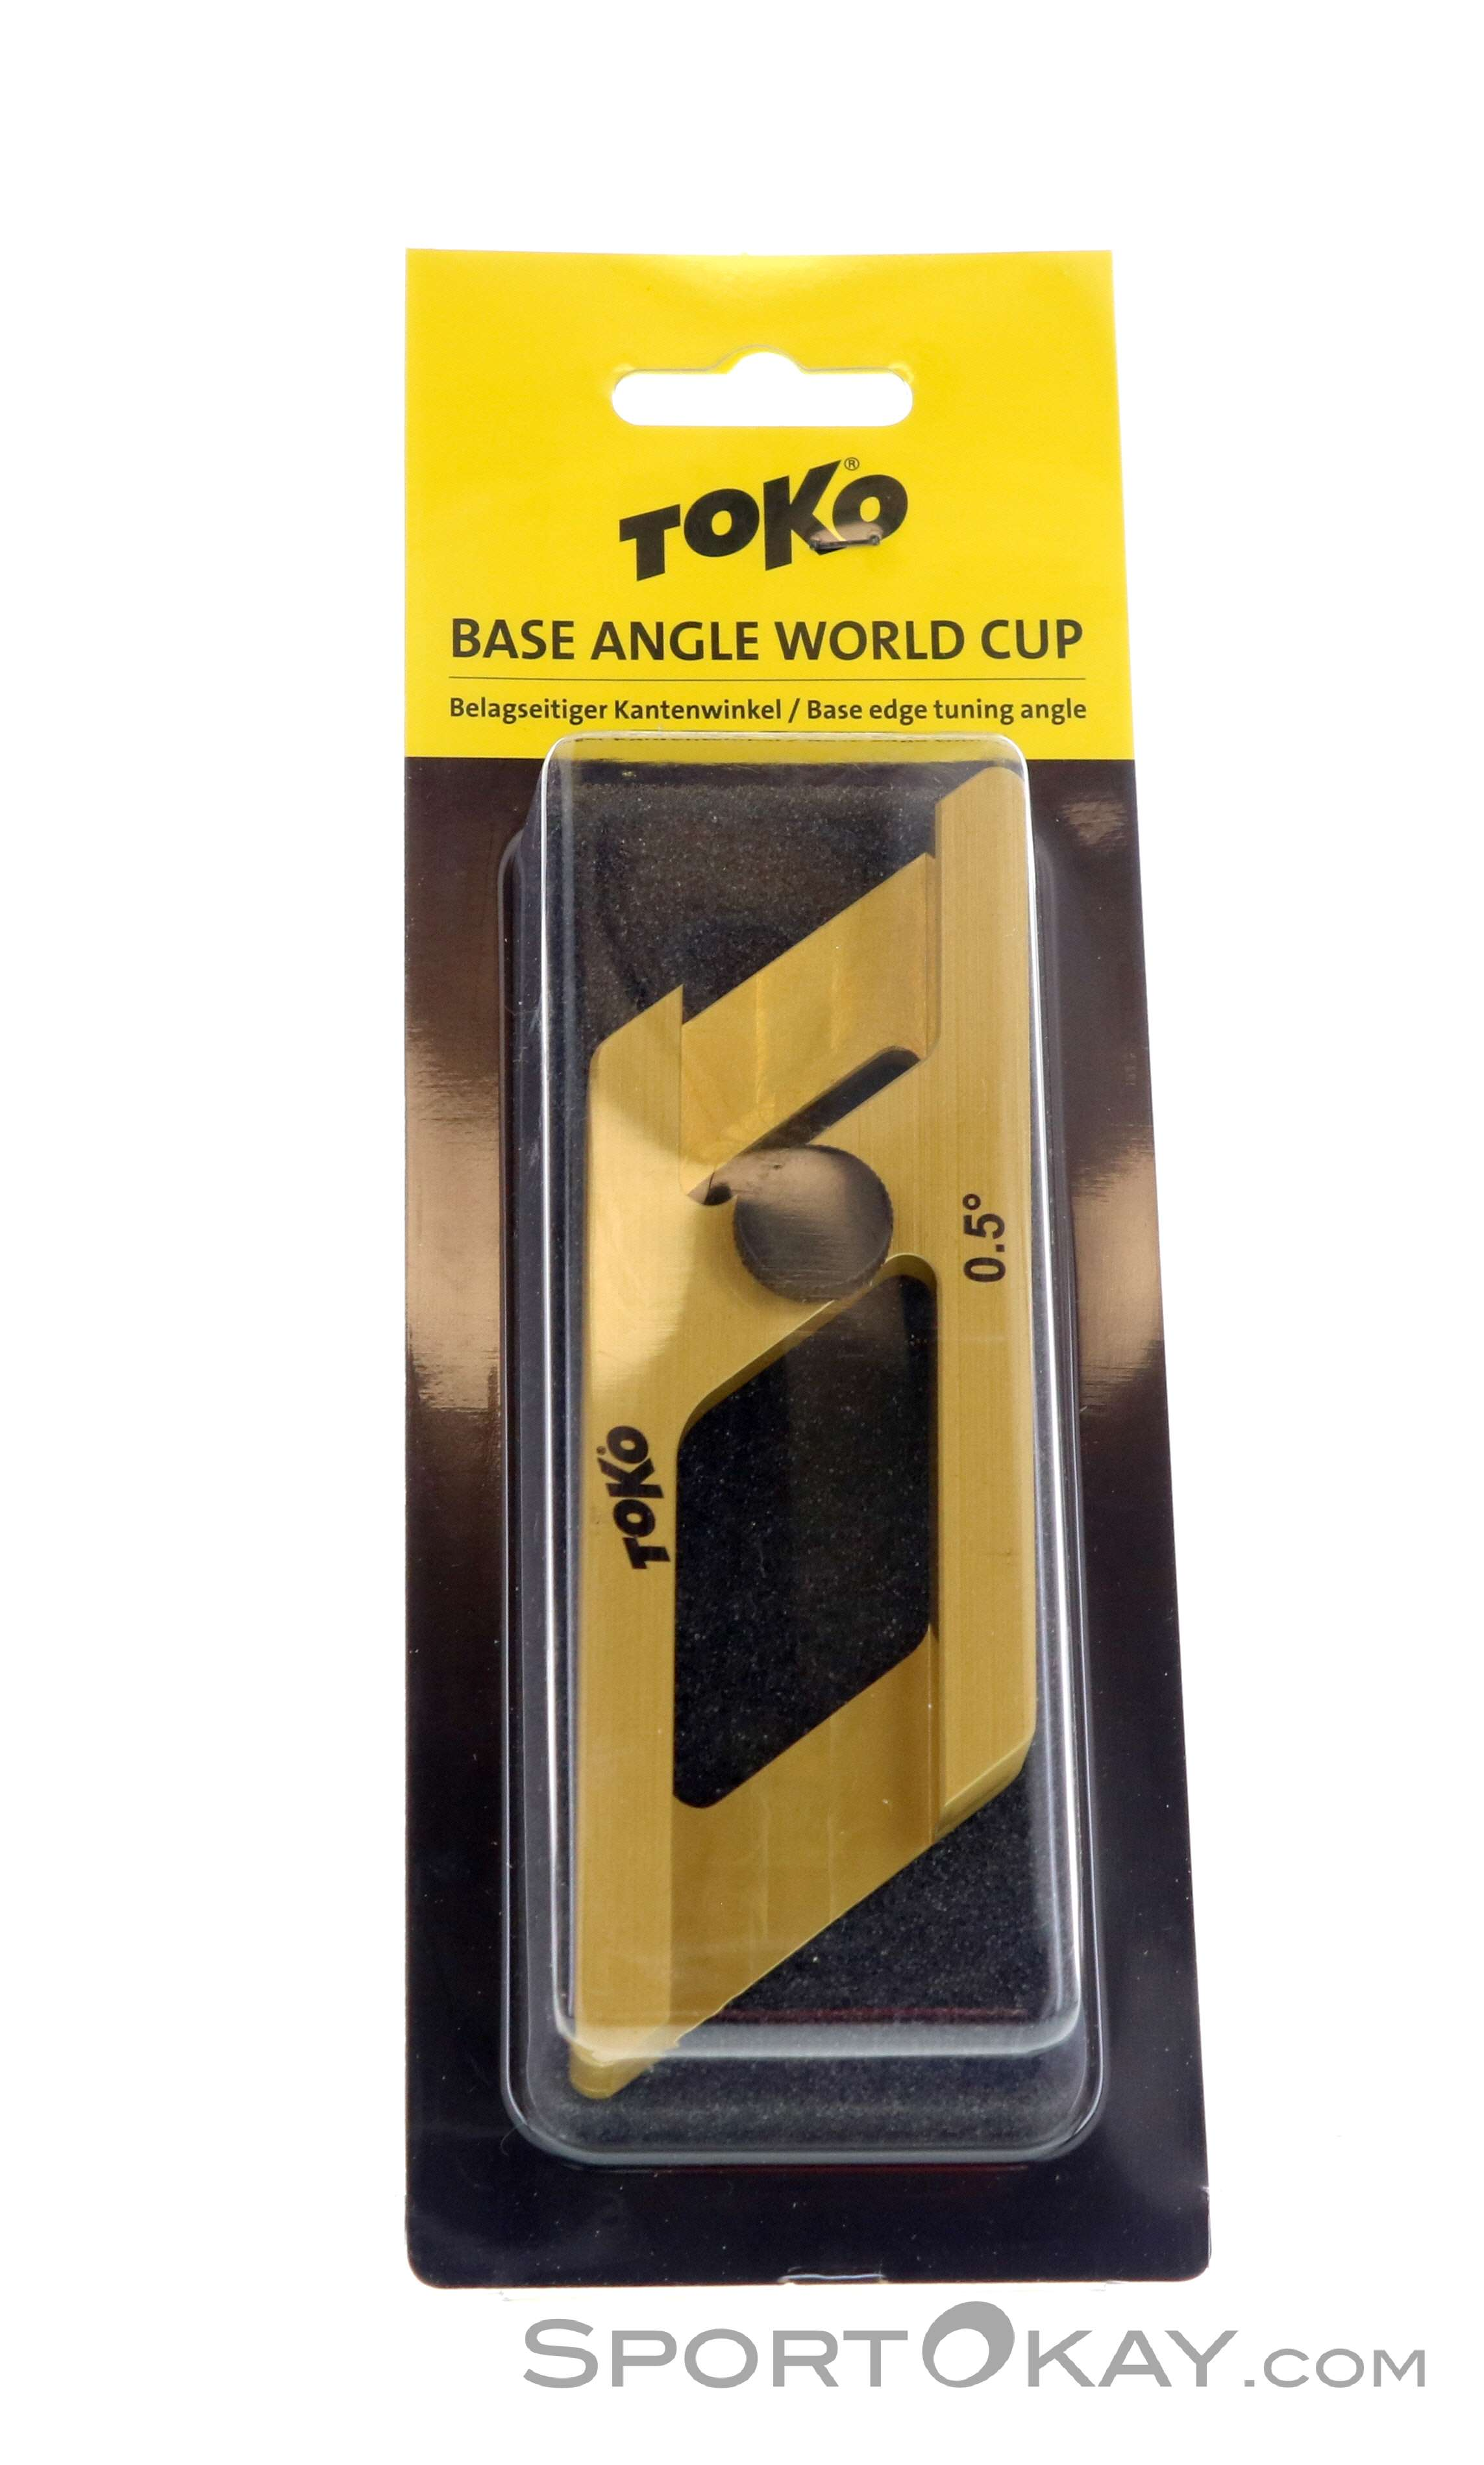 Toko Base Angle World Cup 0,5° Kantenschleifer-Gelb-One Size